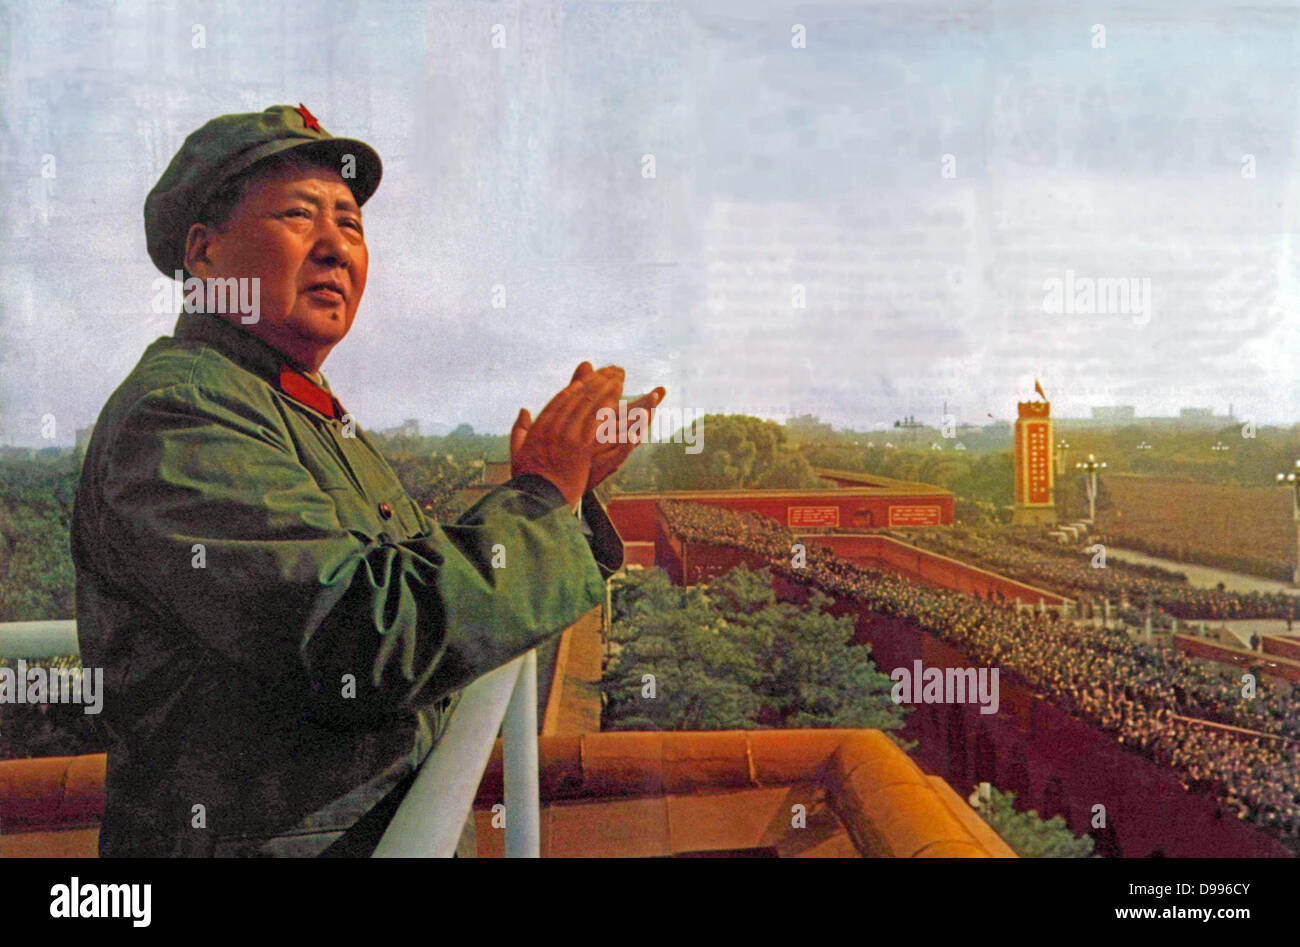 Mao Ze Dung, Chinese political leader. (1893 - 1976) reviews Red Guards 1966 - Stock Image